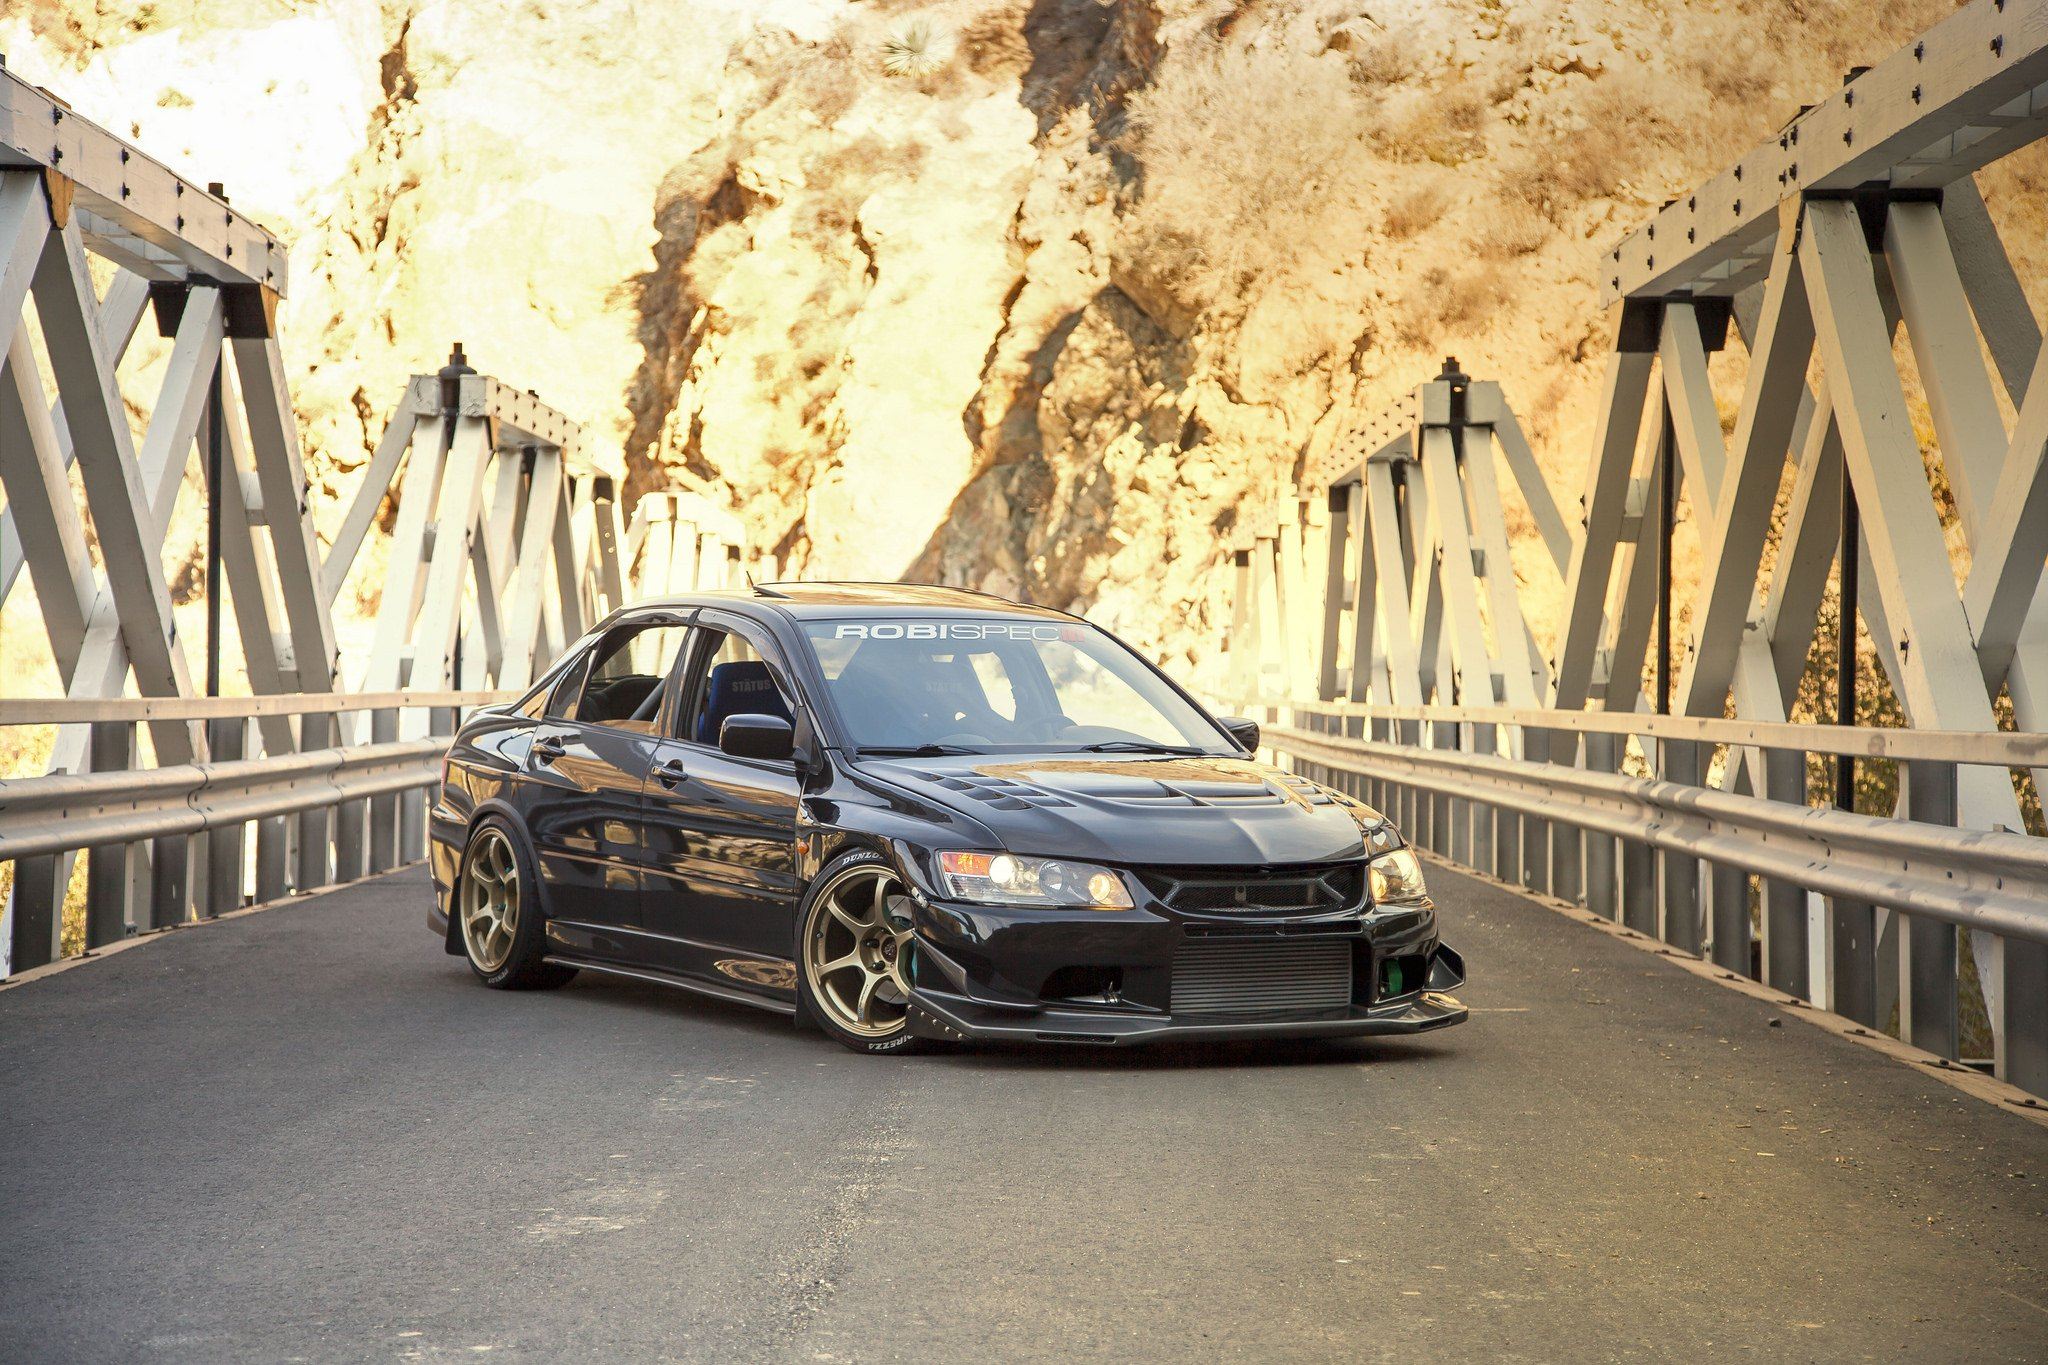 Custom Front Lip on Black Mitsubishi Evolution - Photo by Manuel Veron